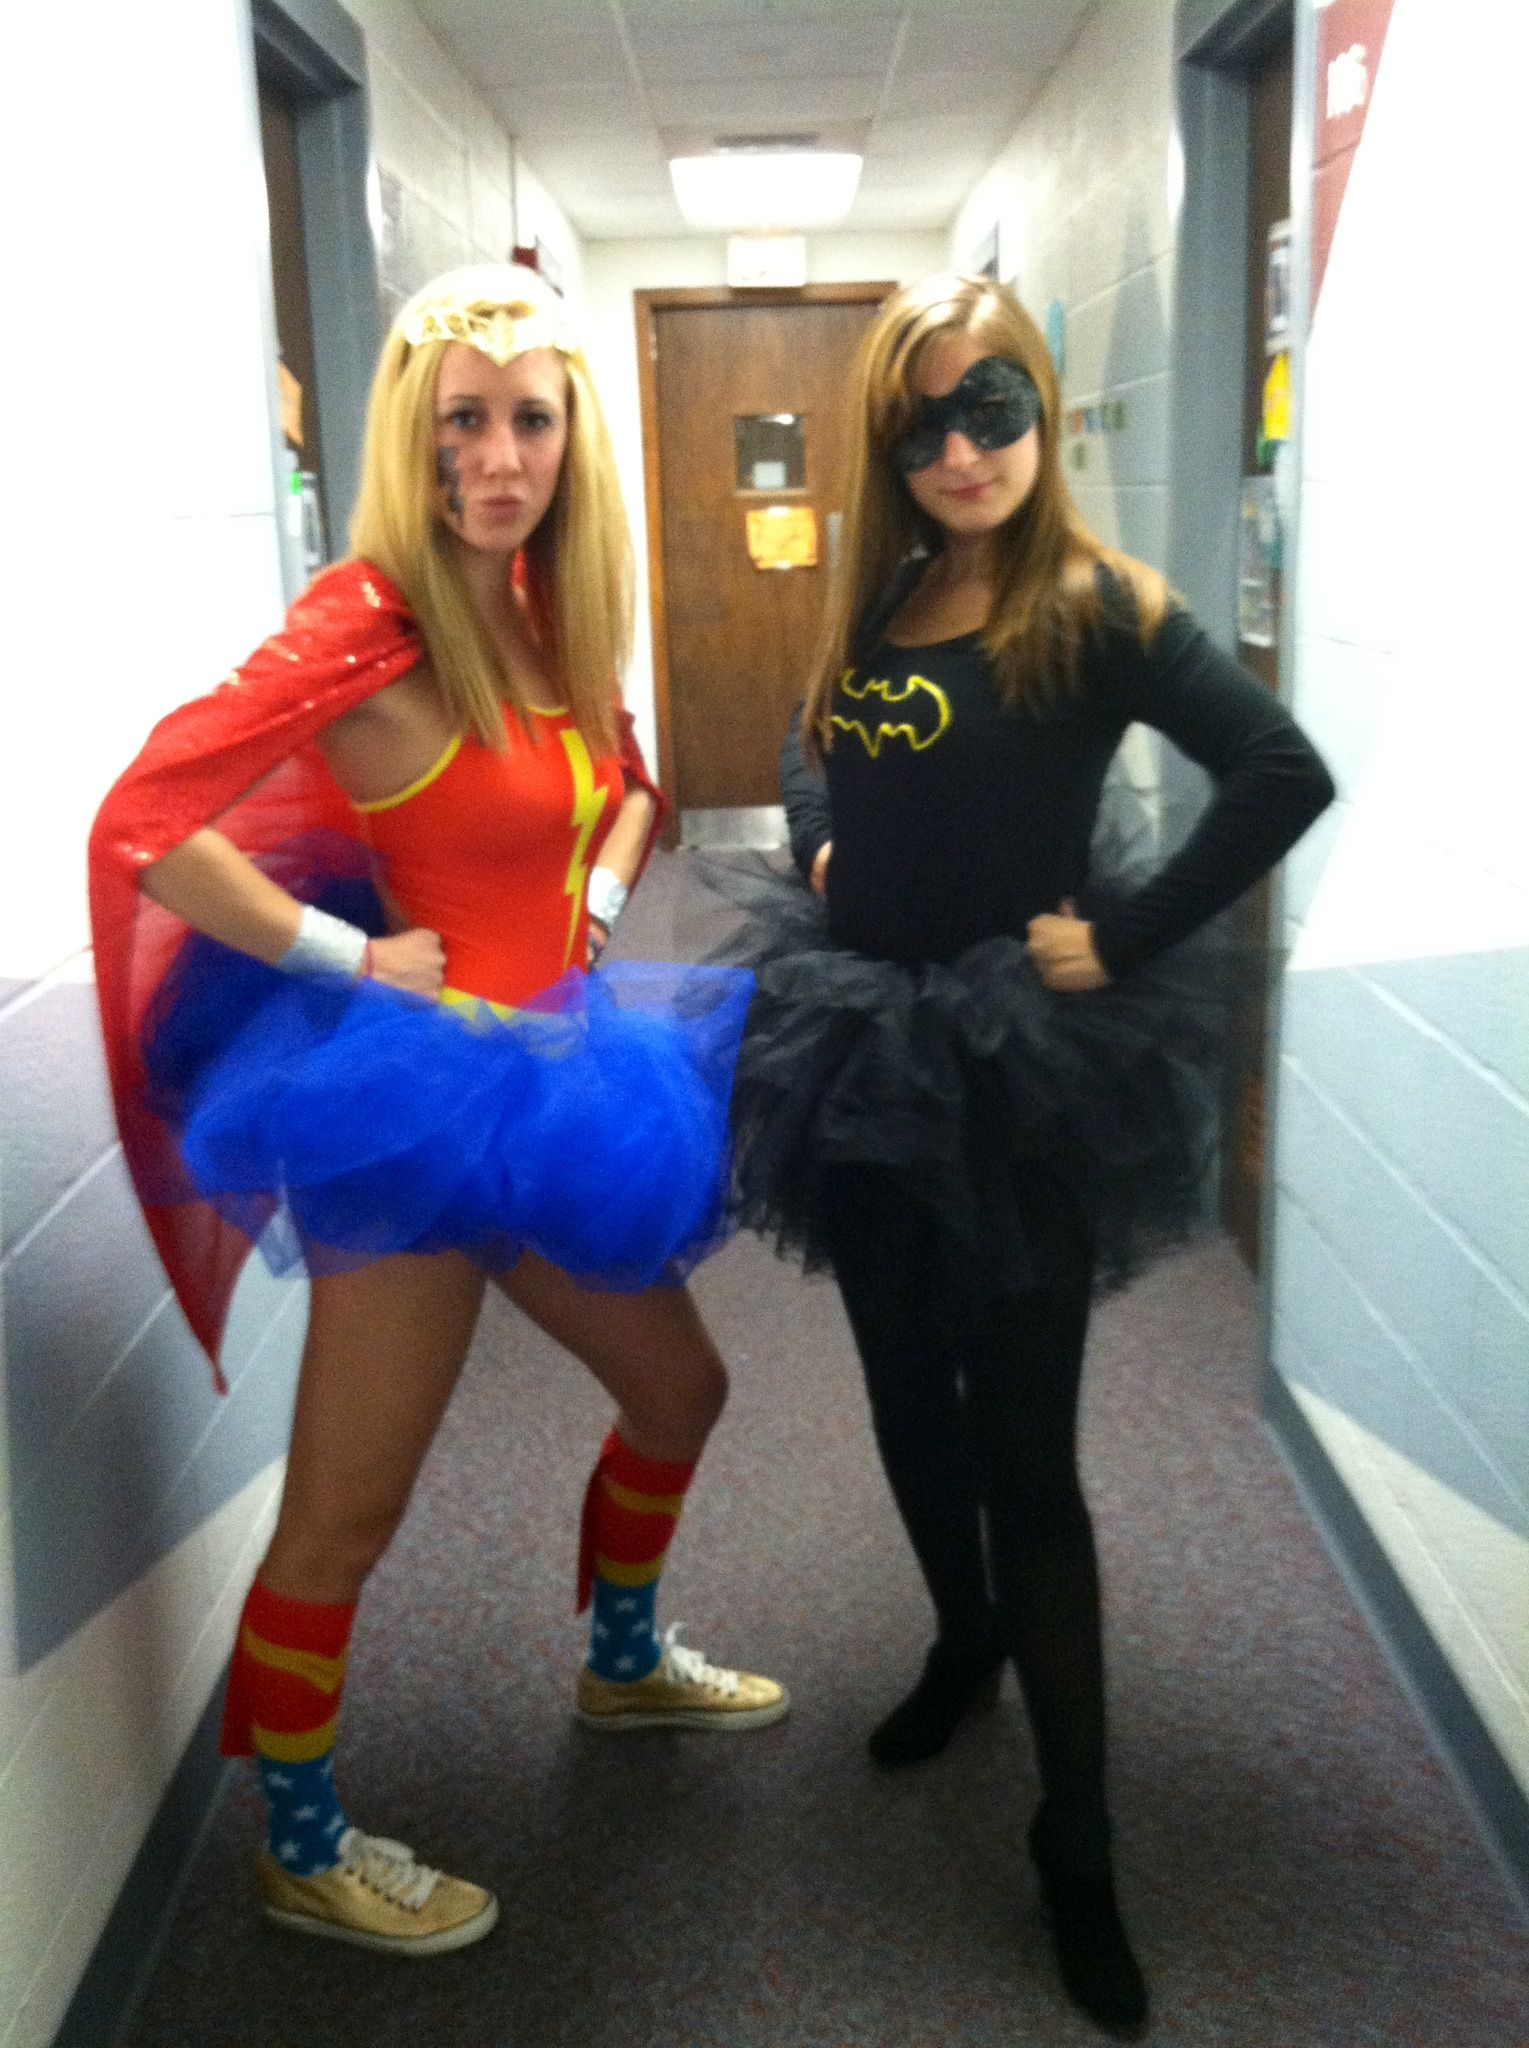 me and my best friend as wonderwoman and batgirl for halloween bff costume - Stores With Halloween Costumes Near Me